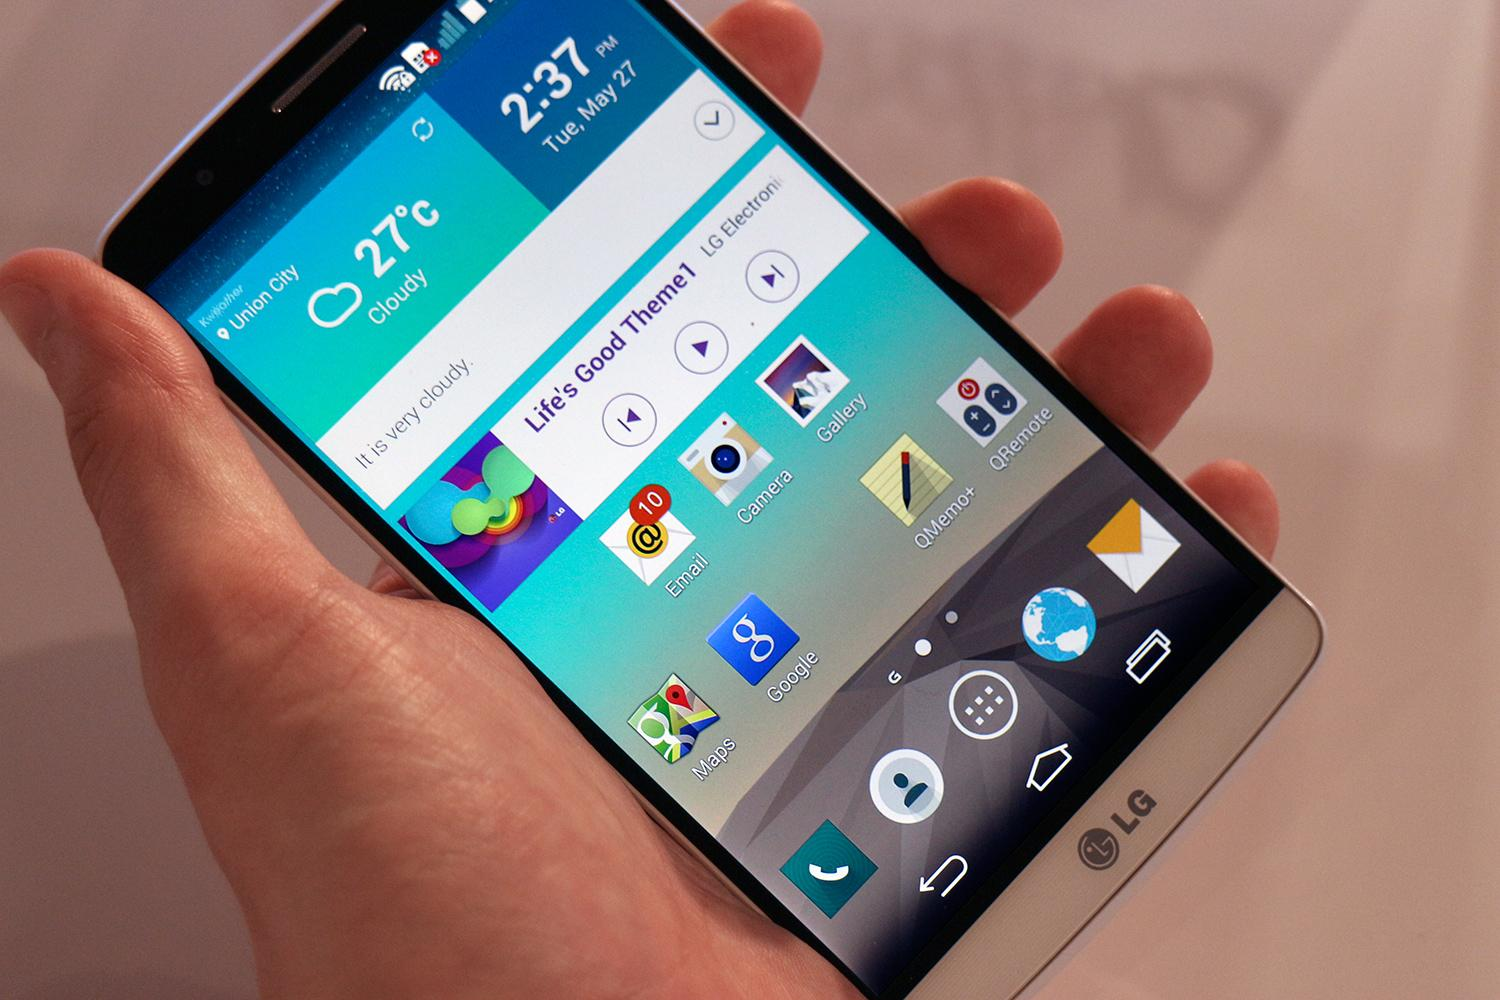 lg g3 rom download